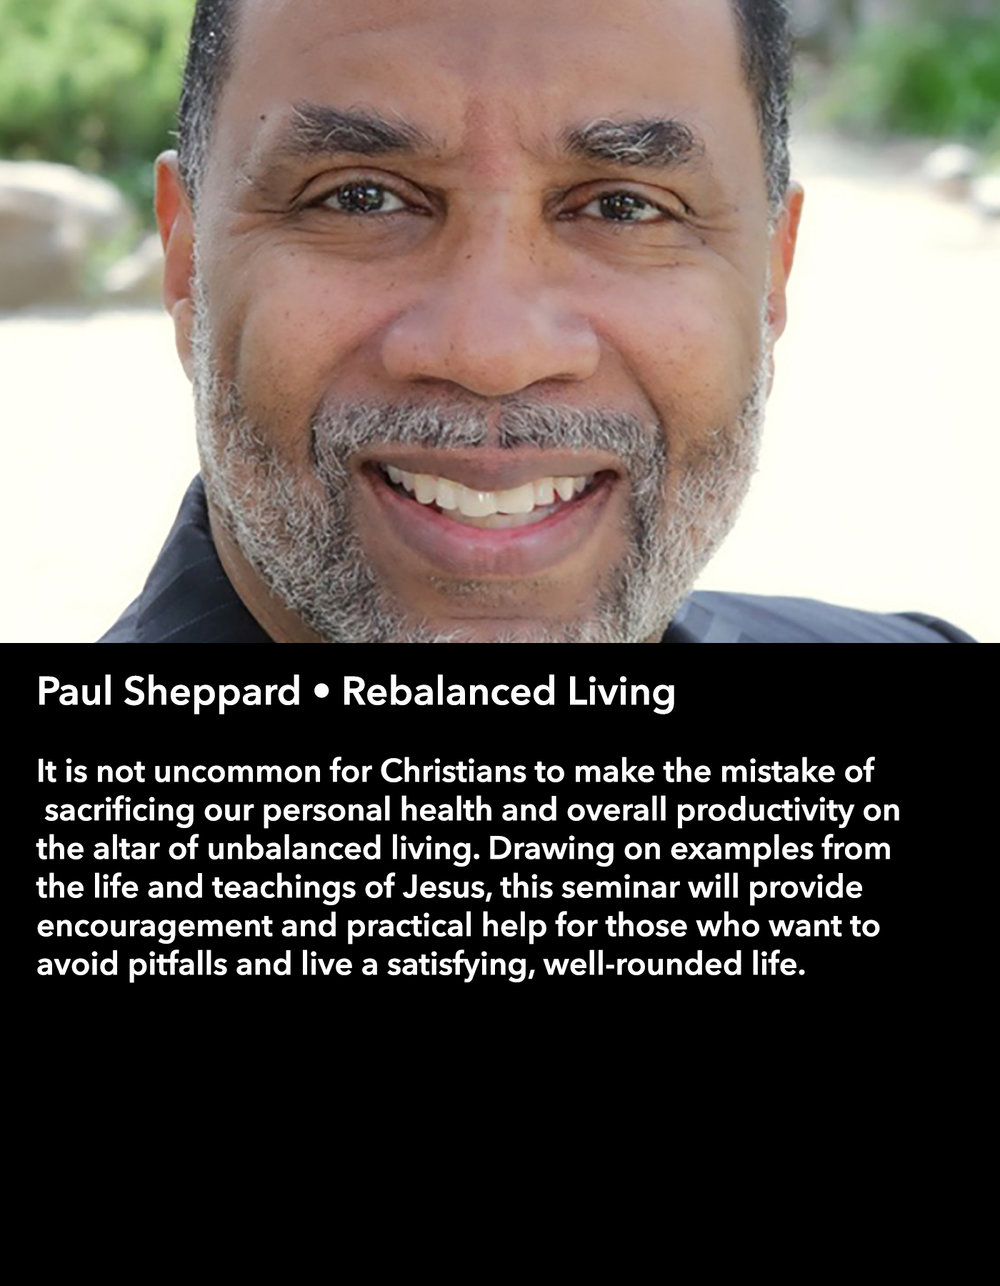 Paul Sheppard • Rebalanced Living • Thursday Night, March 16 • 8:30 pm – 9:45 pm